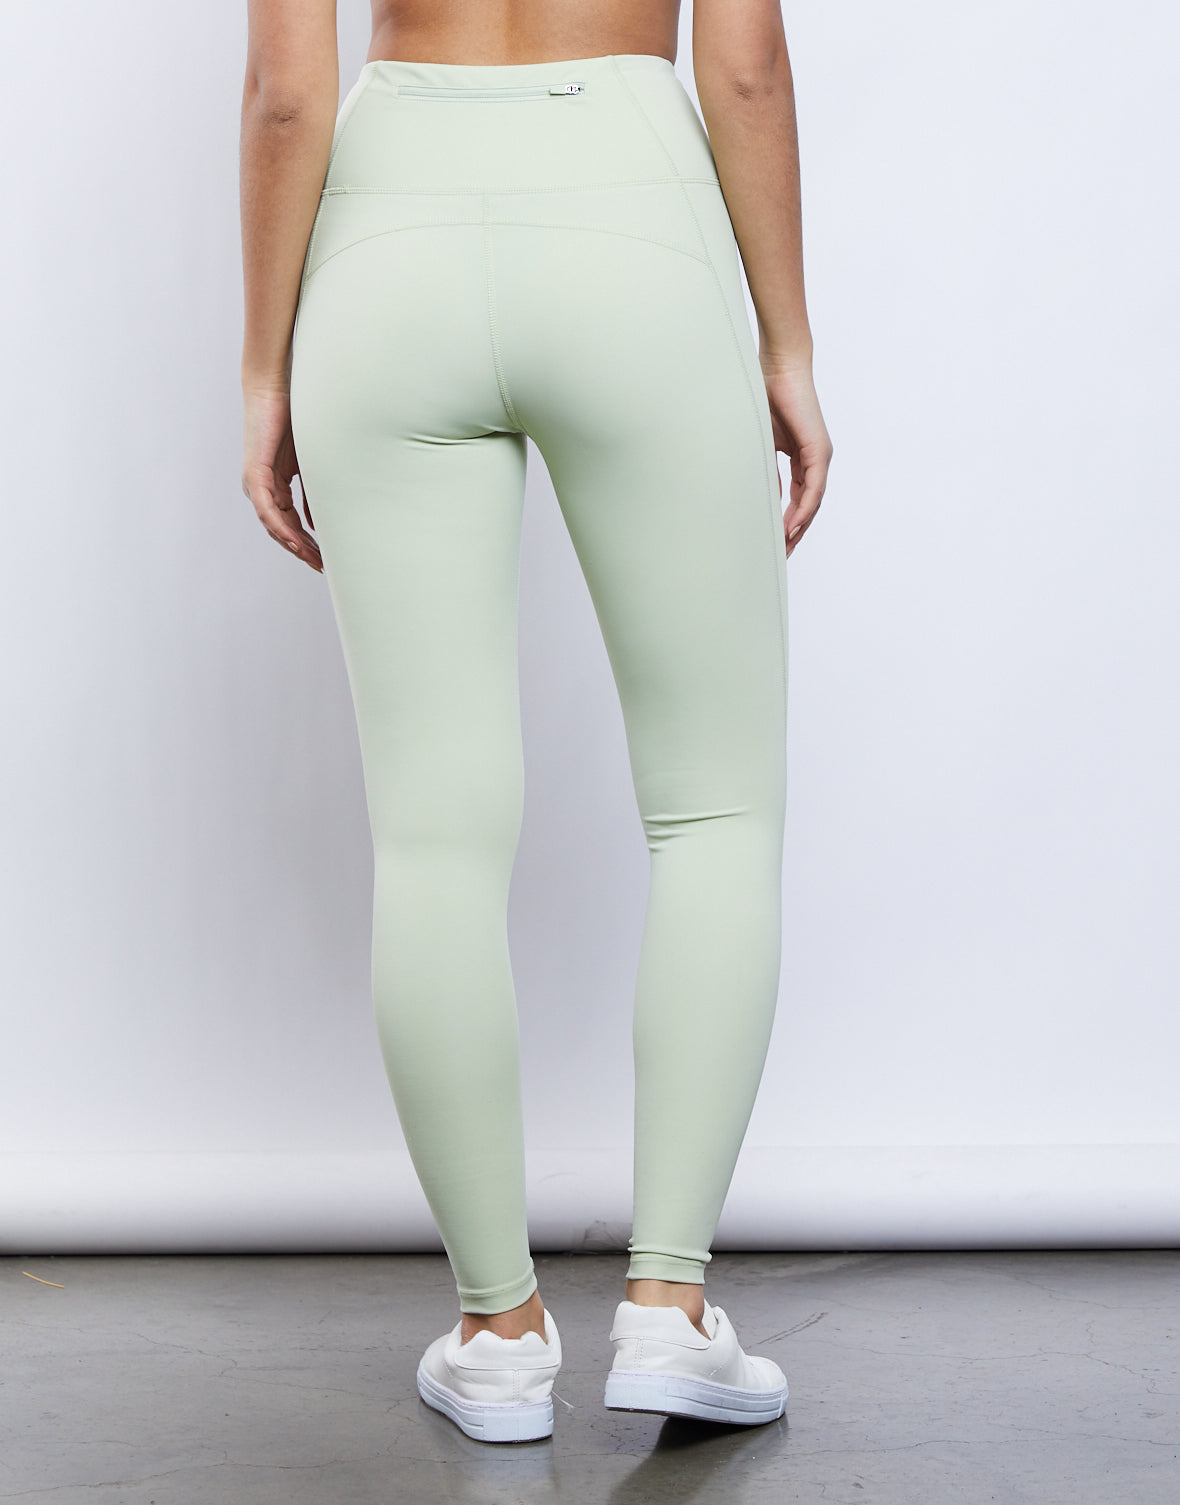 Enhanced Workout Leggings